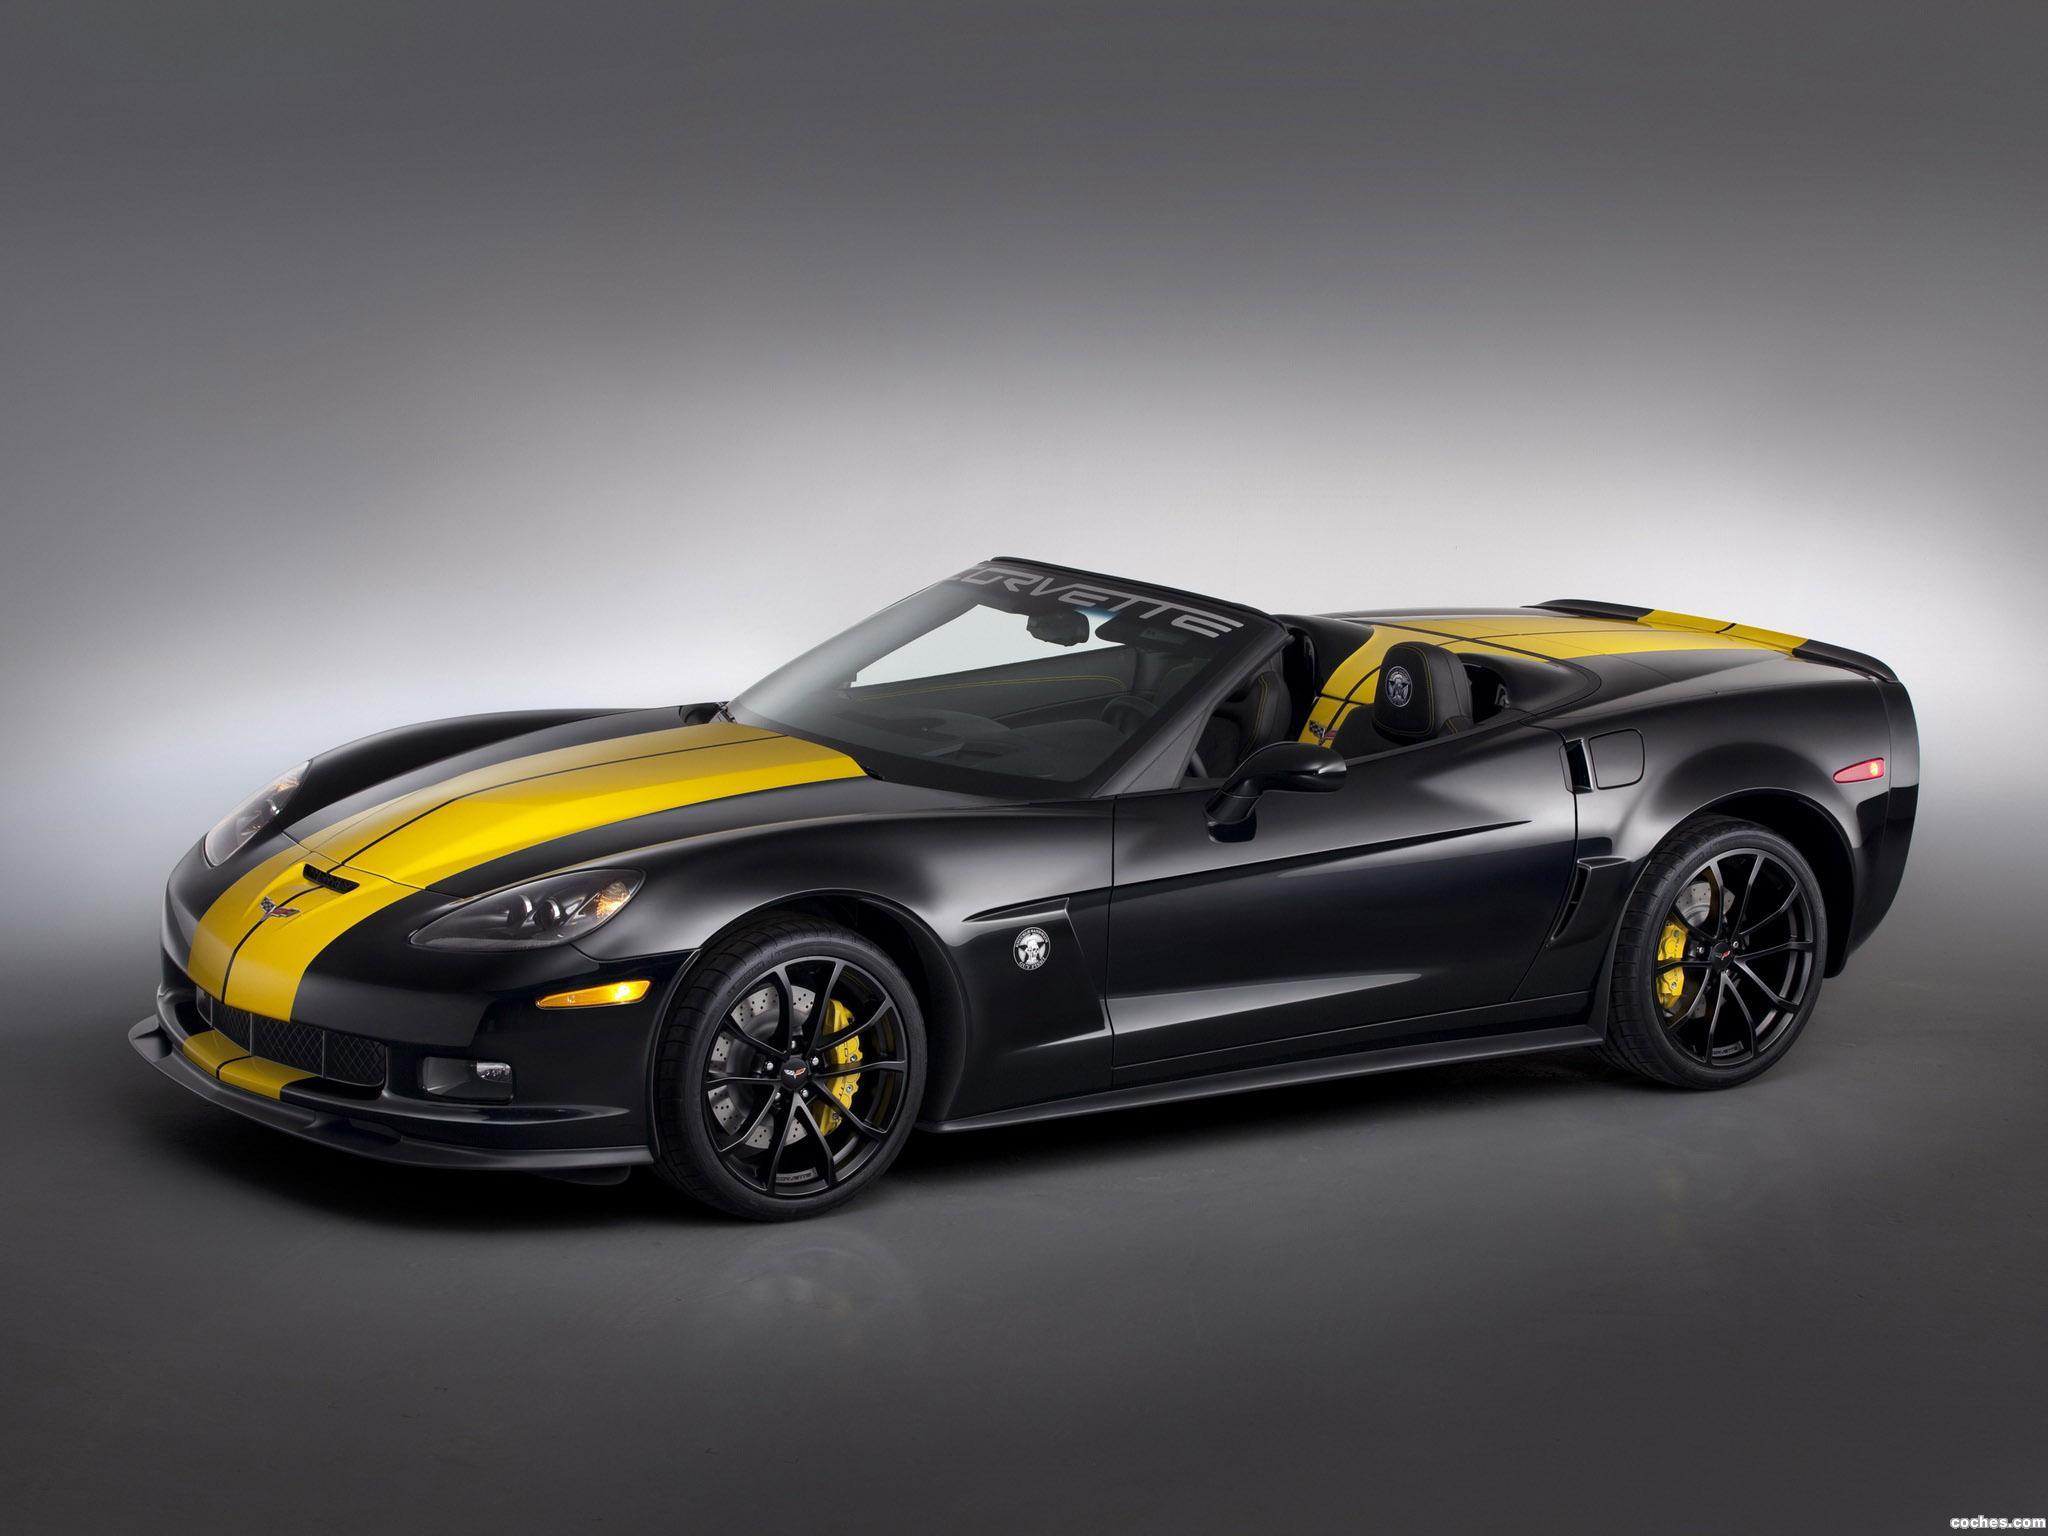 Foto 0 de Chevrolet Corvette 427 Convertible Collector Edition by Guy Fieri 2012